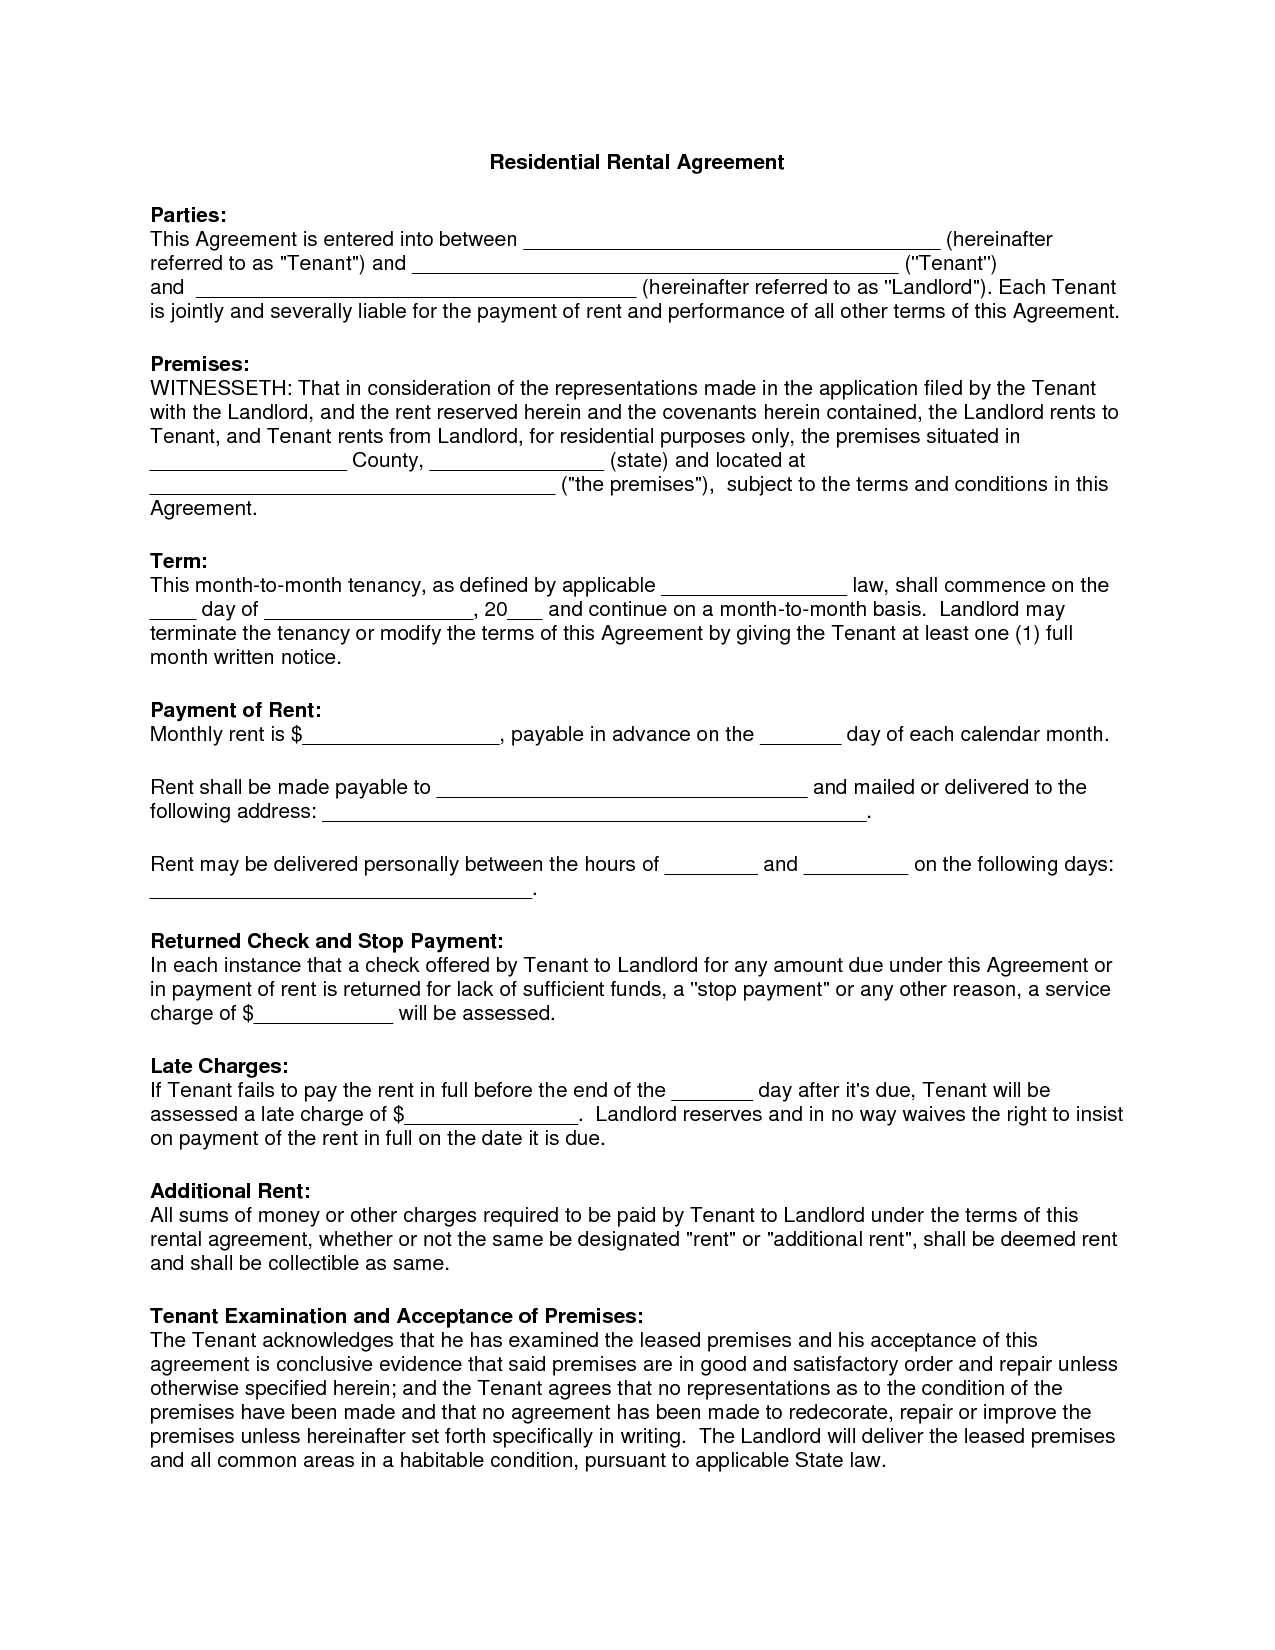 Free Copy Rental Lease Agreement | Residential Rental Agreement - Apartment Lease Agreement Free Printable